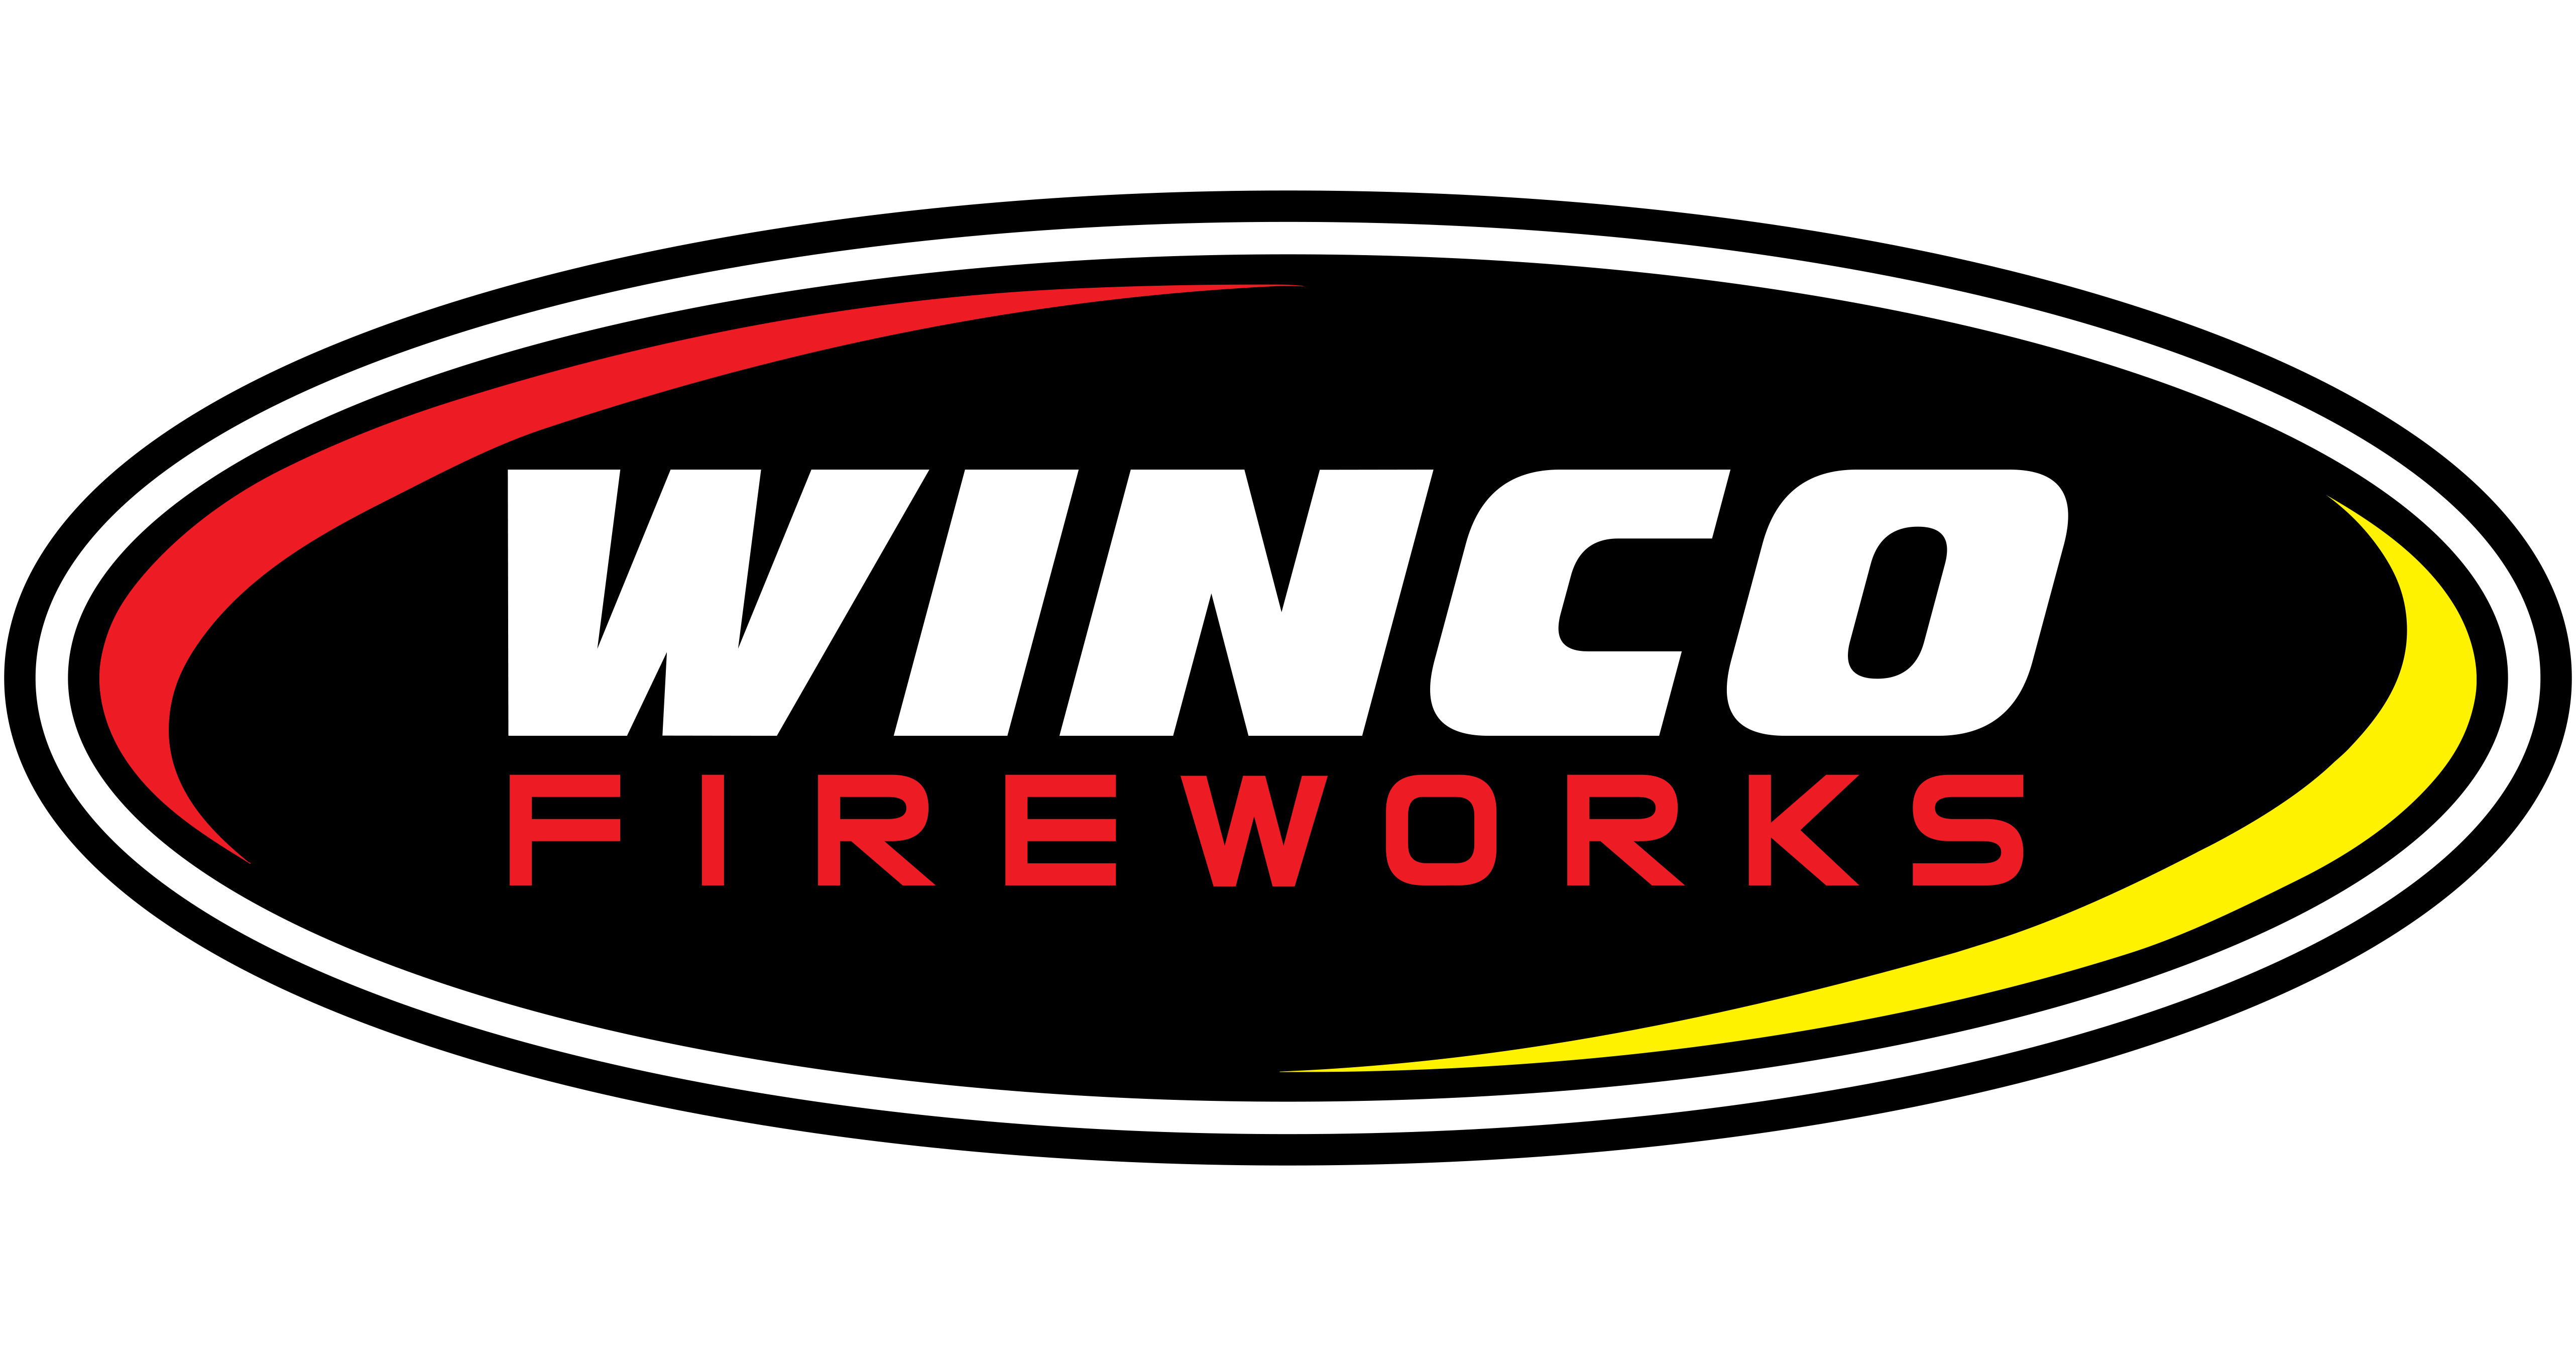 Glossary Of Fireworks Terms Basics Electrical Firing Firework And Pyrotechnics Helping Those In Need